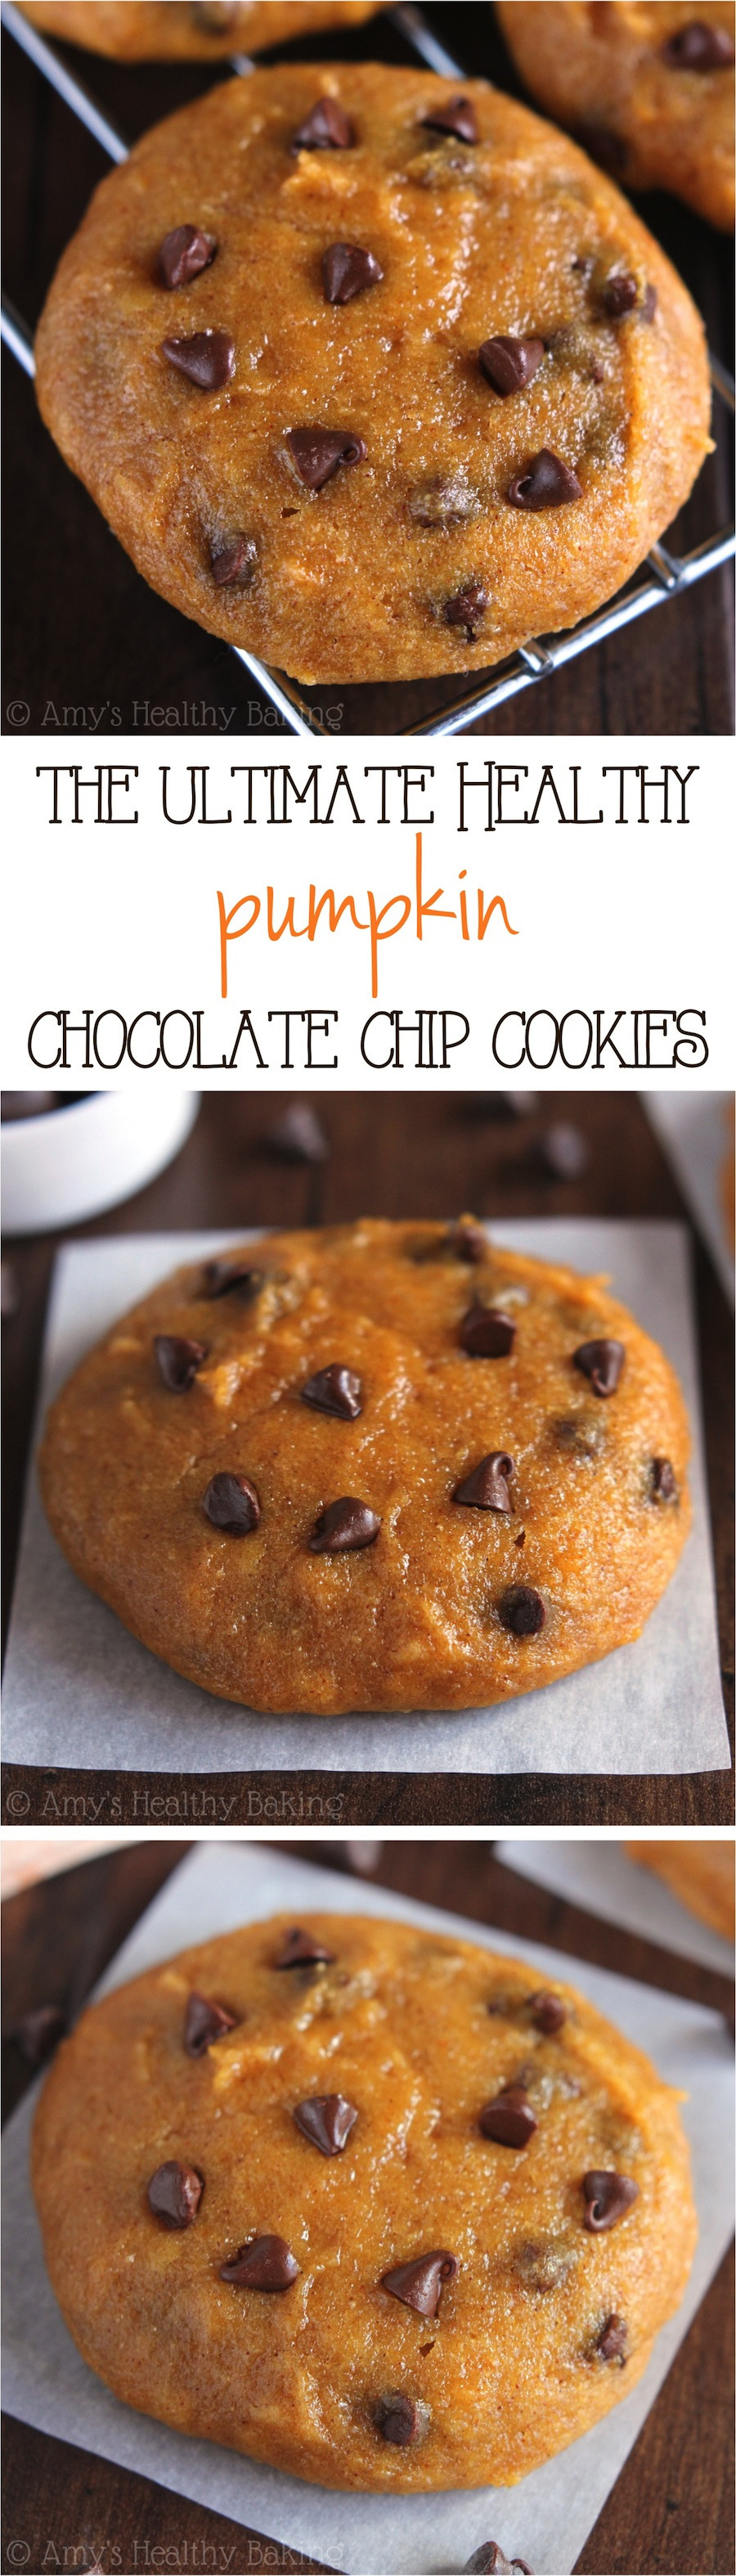 Healthy Pumpkin Cookie Recipes  Ultimate Healthy Soft & Chewy Pumpkin Chocolate Chip